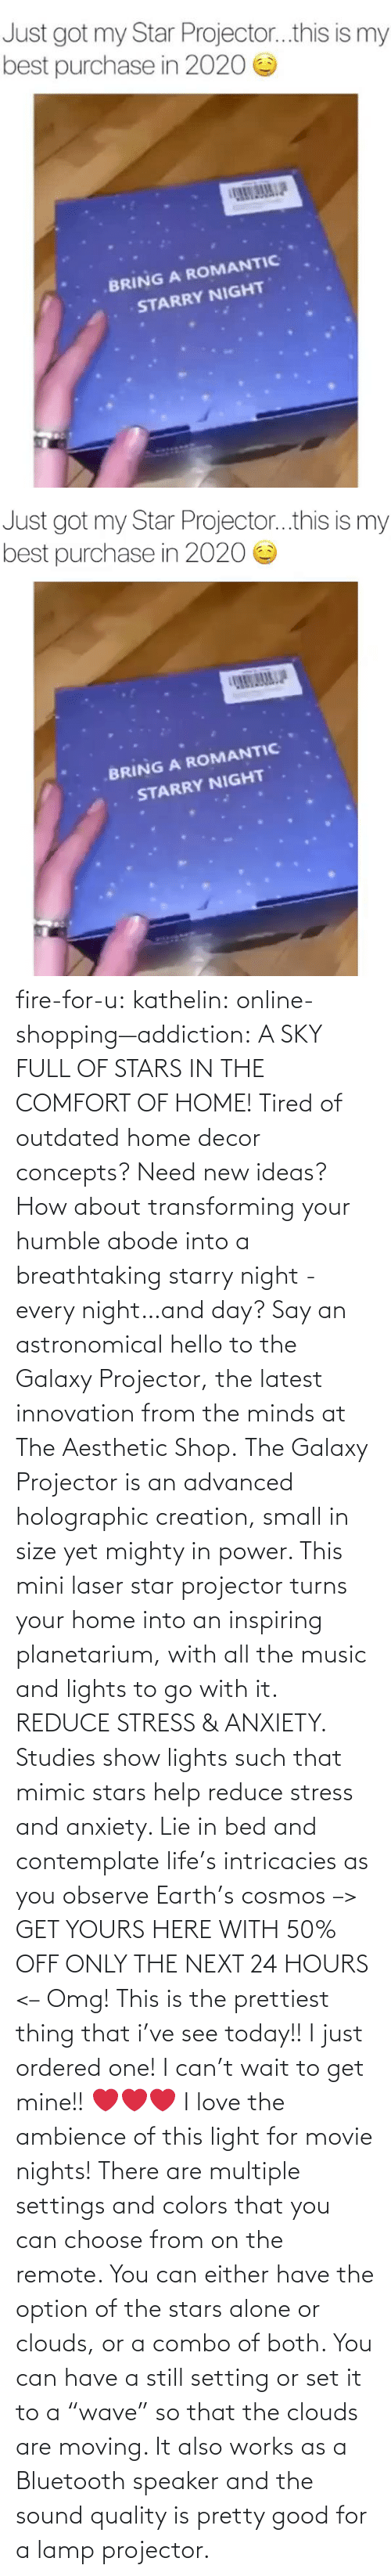 "Off: fire-for-u:  kathelin: online-shopping—addiction:  A SKY FULL OF STARS IN THE COMFORT OF HOME! Tired of outdated home decor concepts? Need new ideas? How about transforming your humble abode into a breathtaking starry night - every night…and day? Say an astronomical hello to the Galaxy Projector, the latest innovation from the minds at The Aesthetic Shop. The Galaxy Projector is an advanced holographic creation, small in size yet mighty in power. This mini laser star projector turns your home into an inspiring planetarium, with all the music and lights to go with it. REDUCE STRESS & ANXIETY. Studies show lights such that mimic stars help reduce stress and anxiety. Lie in bed and contemplate life's intricacies as you observe Earth's cosmos  –> GET YOURS HERE WITH 50% OFF ONLY THE NEXT 24 HOURS <–   Omg! This is the prettiest thing that i've see today!! I just ordered one! I can't wait to get mine!! ❤️️❤️️❤️️  I love the ambience of this light for movie nights! There are multiple settings and colors that you can choose from on the remote. You can either have the option of the stars alone or clouds, or a combo of both. You can have a still setting or set it to a ""wave"" so that the clouds are moving. It also works as a Bluetooth speaker and the sound quality is pretty good for a lamp projector."